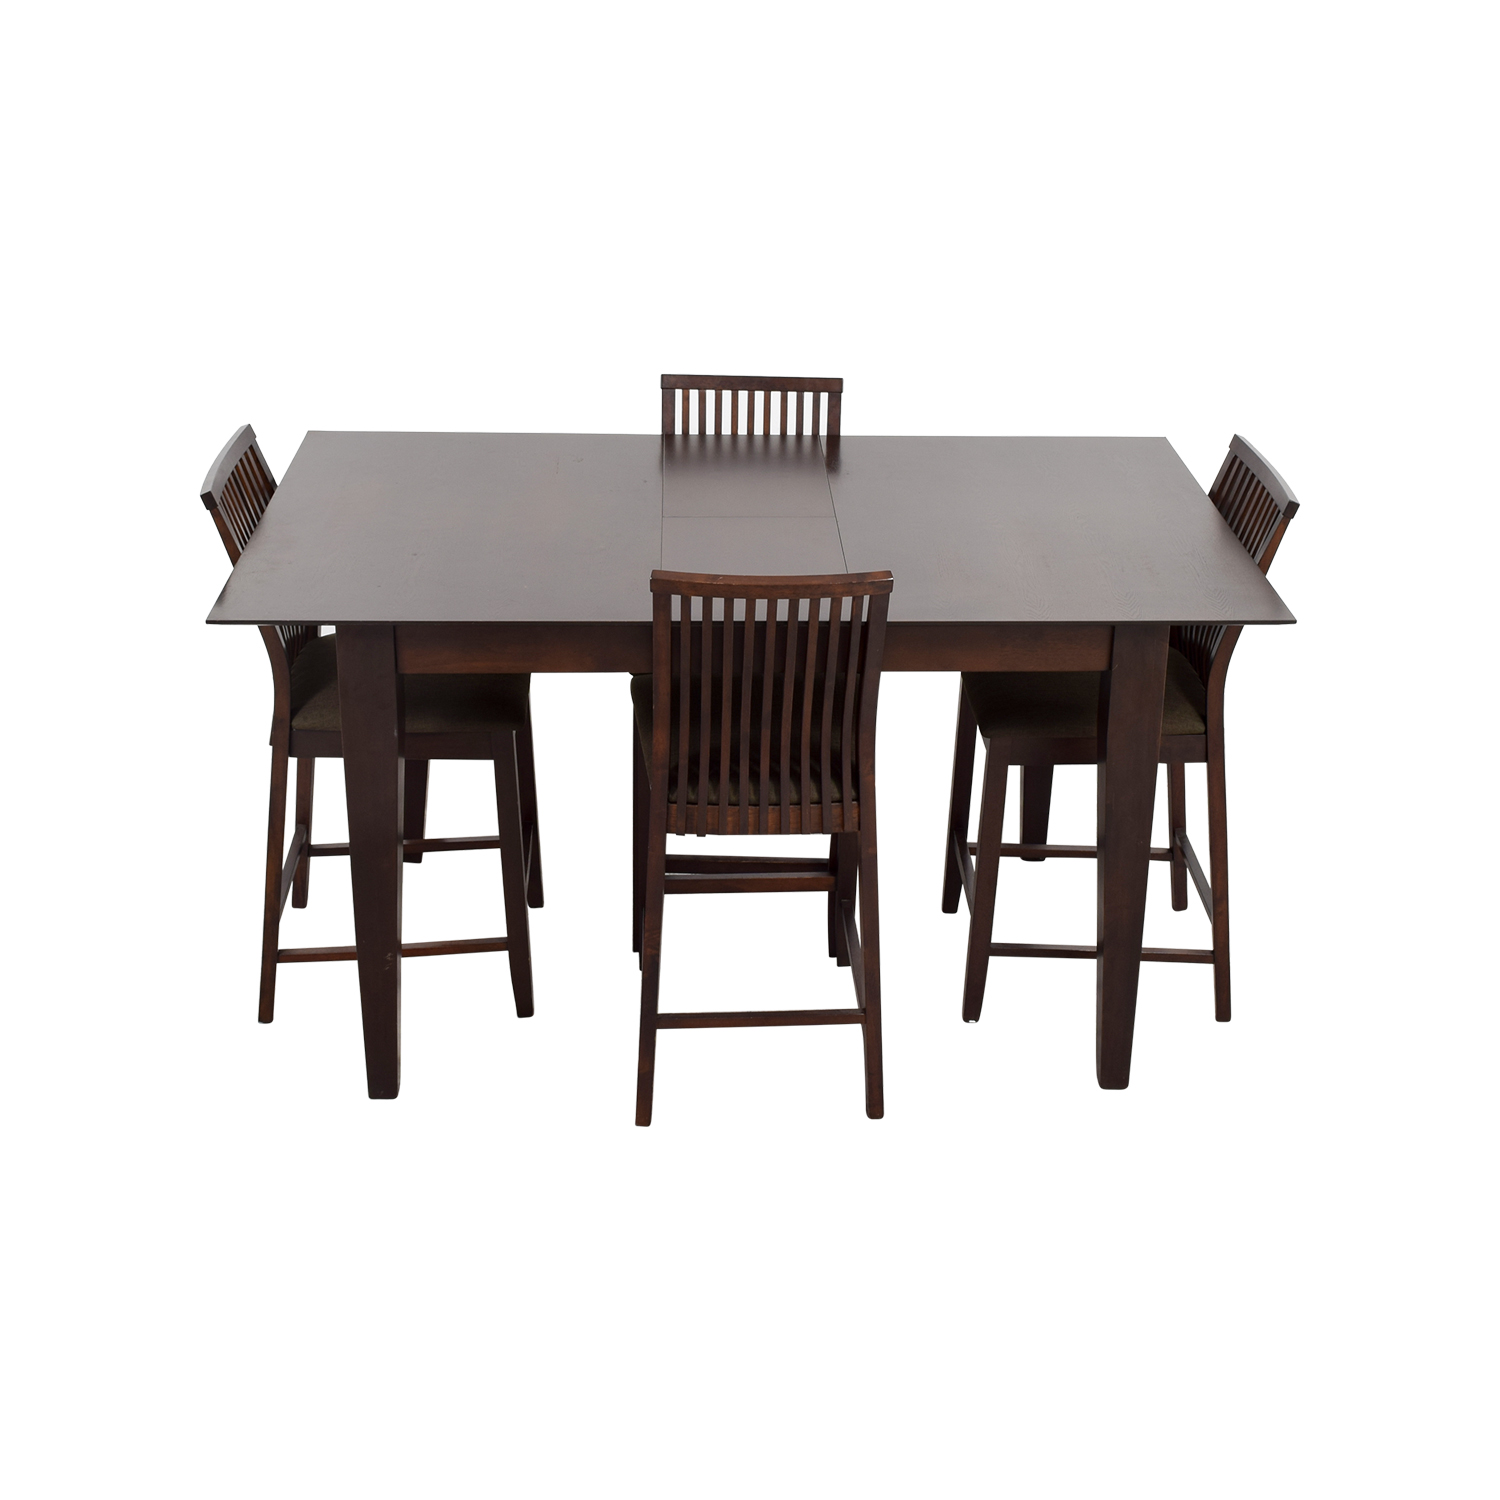 Raymour And Flanigan Dining Room: Raymour & Flanigan Raymour & Flanigan Dining Set